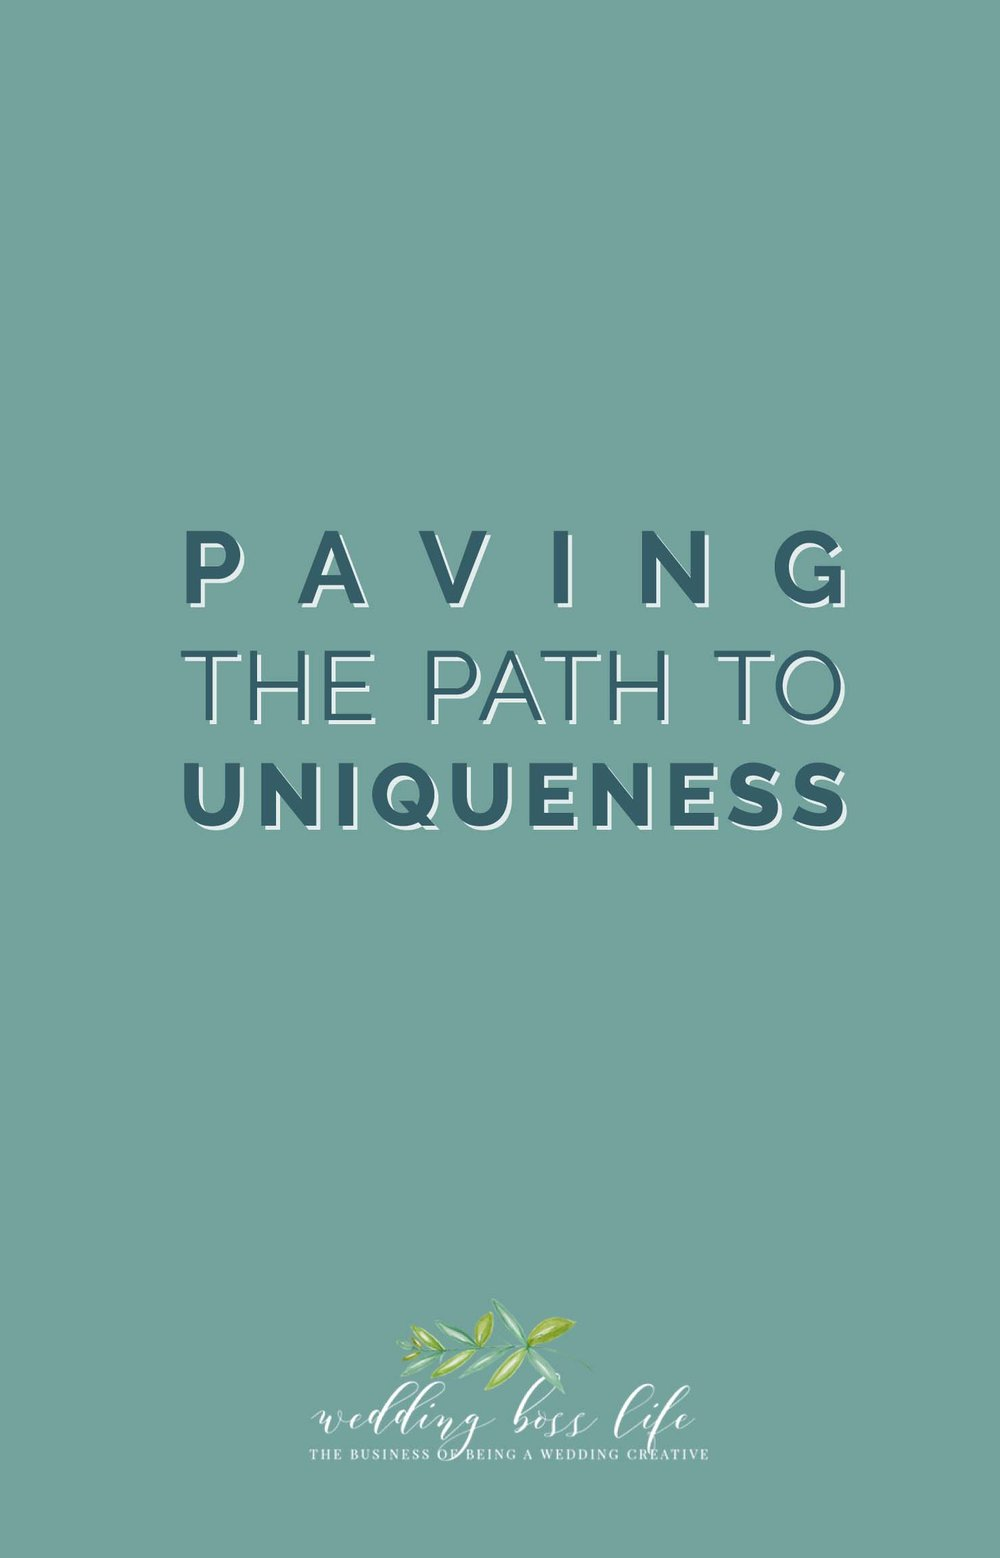 Paving the Path to Uniqueness